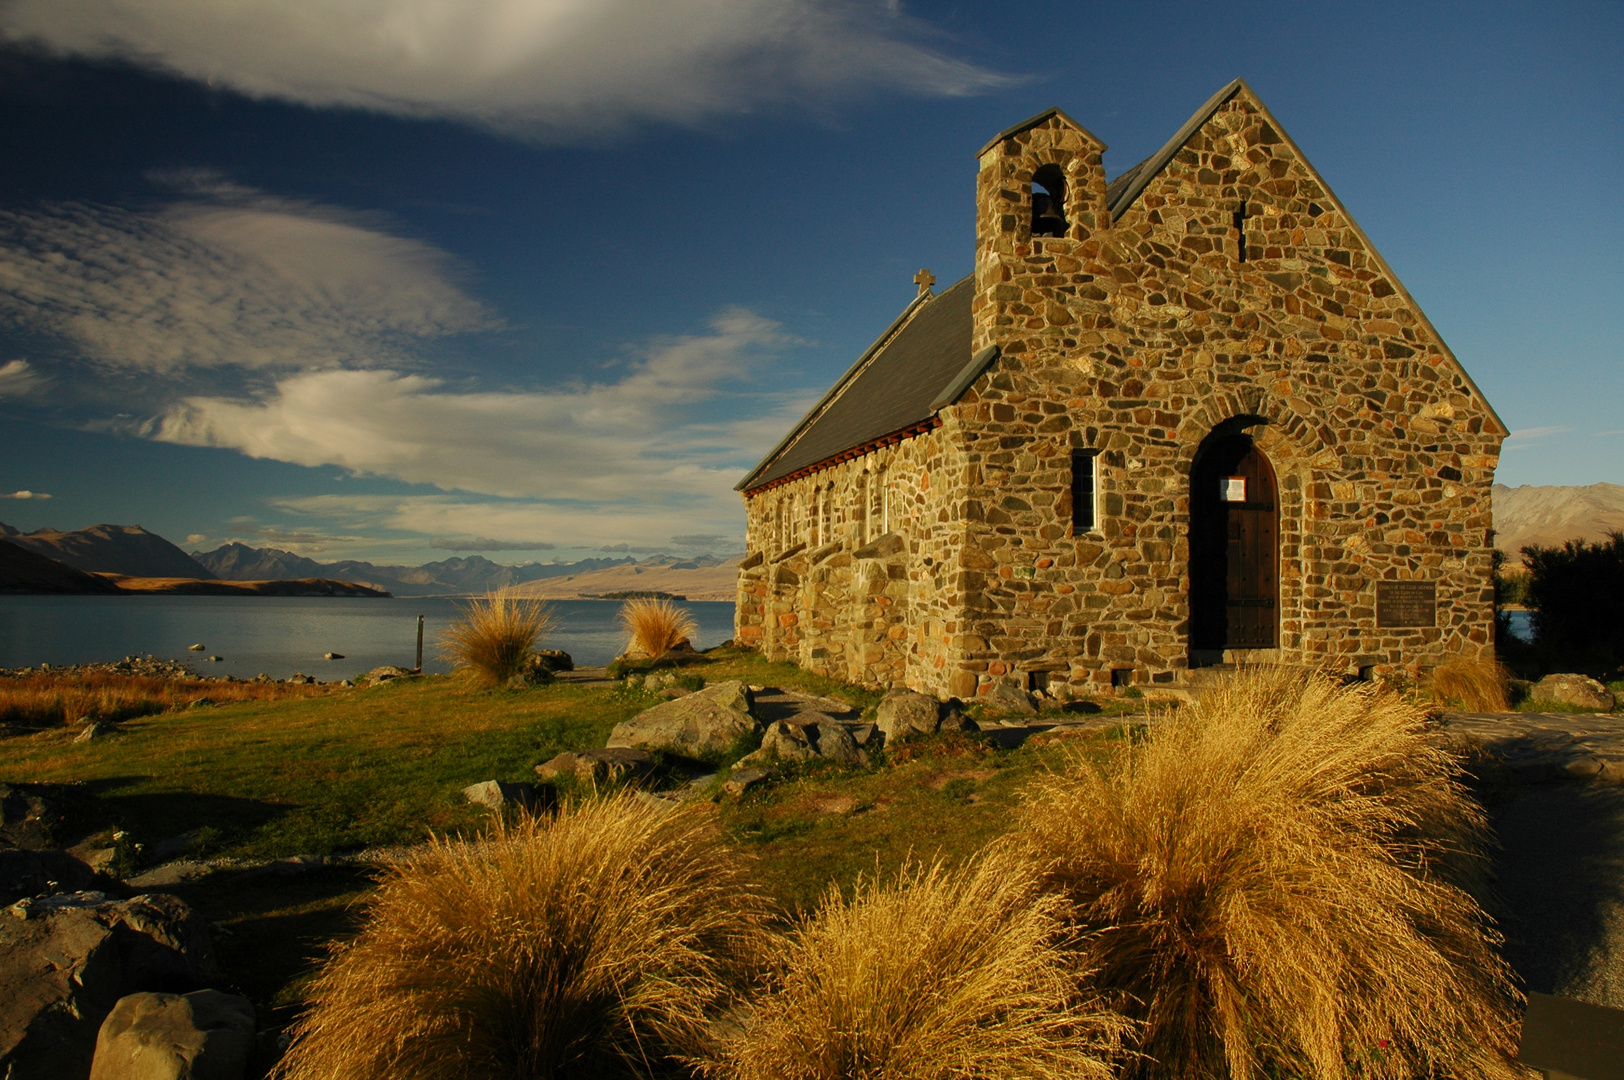 Church of the Good Shephard, Lake Tekapo